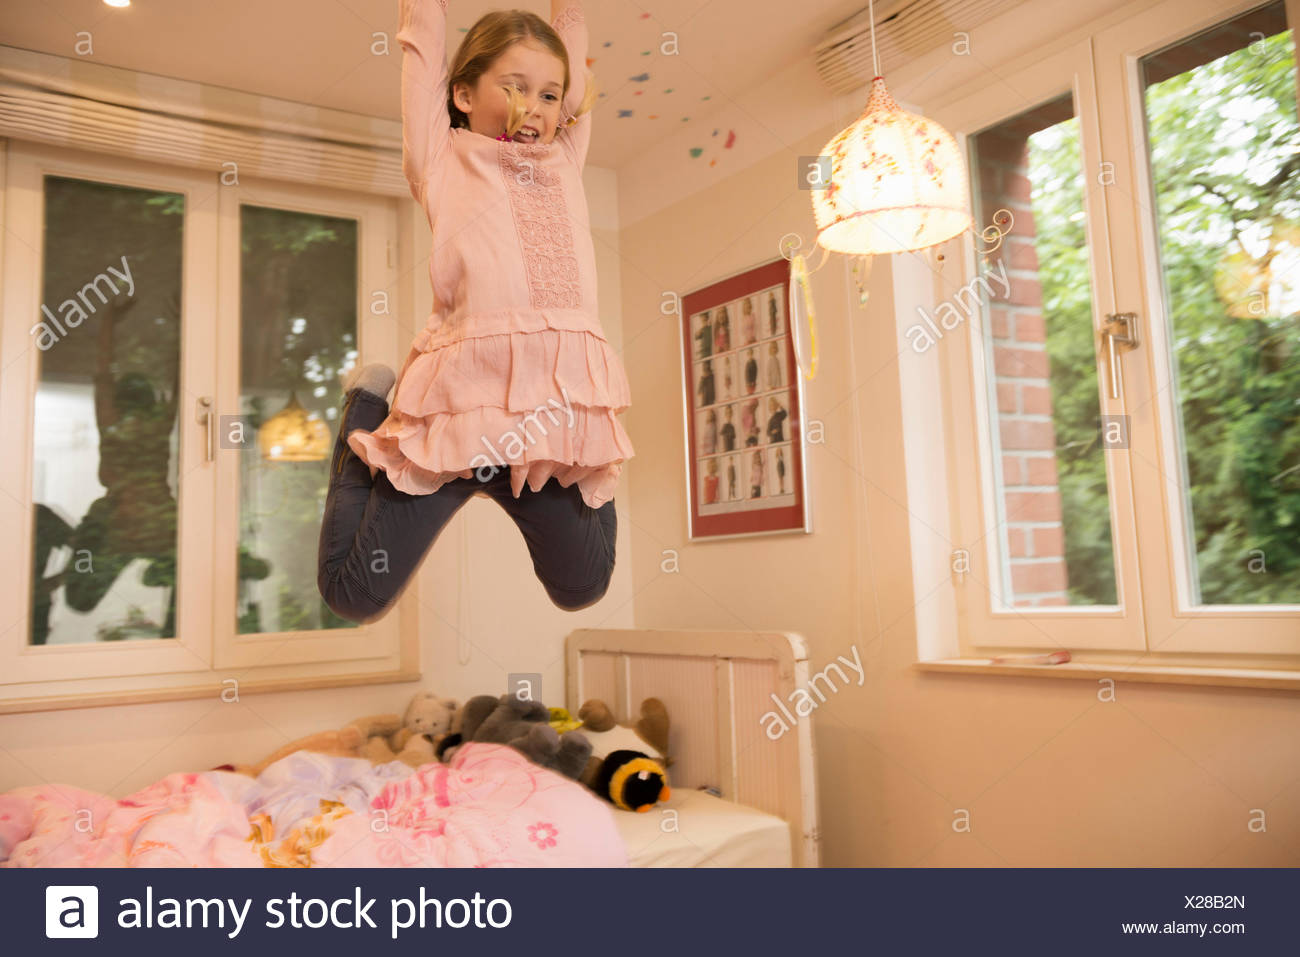 Girl having fun jumping mid air from bed in bedroom - Stock Image